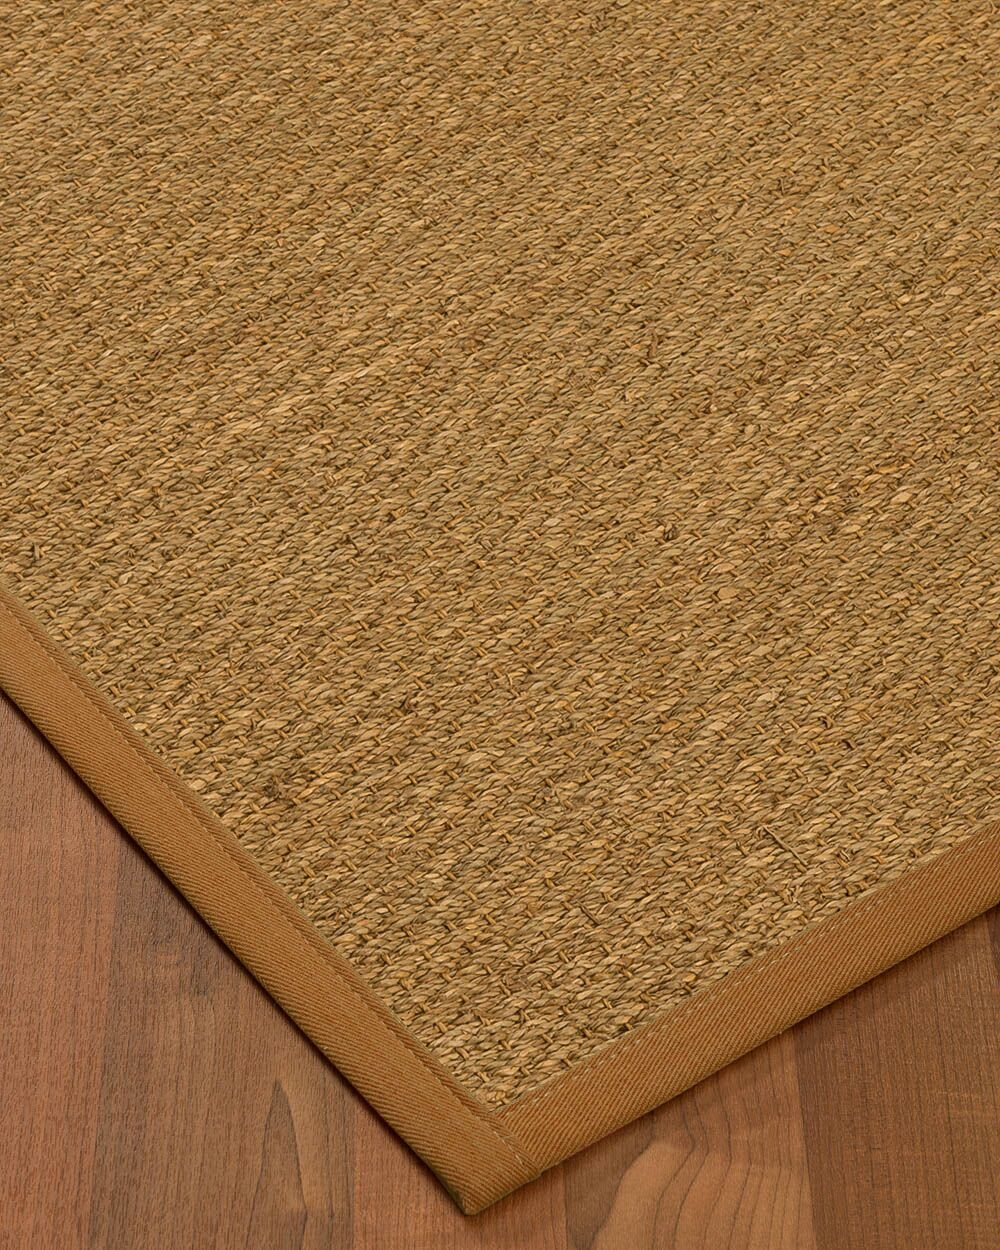 Anya Border Hand-Woven Beige/Sienna Area Rug Rug Size: Rectangle 4' x 6', Rug Pad Included: Yes